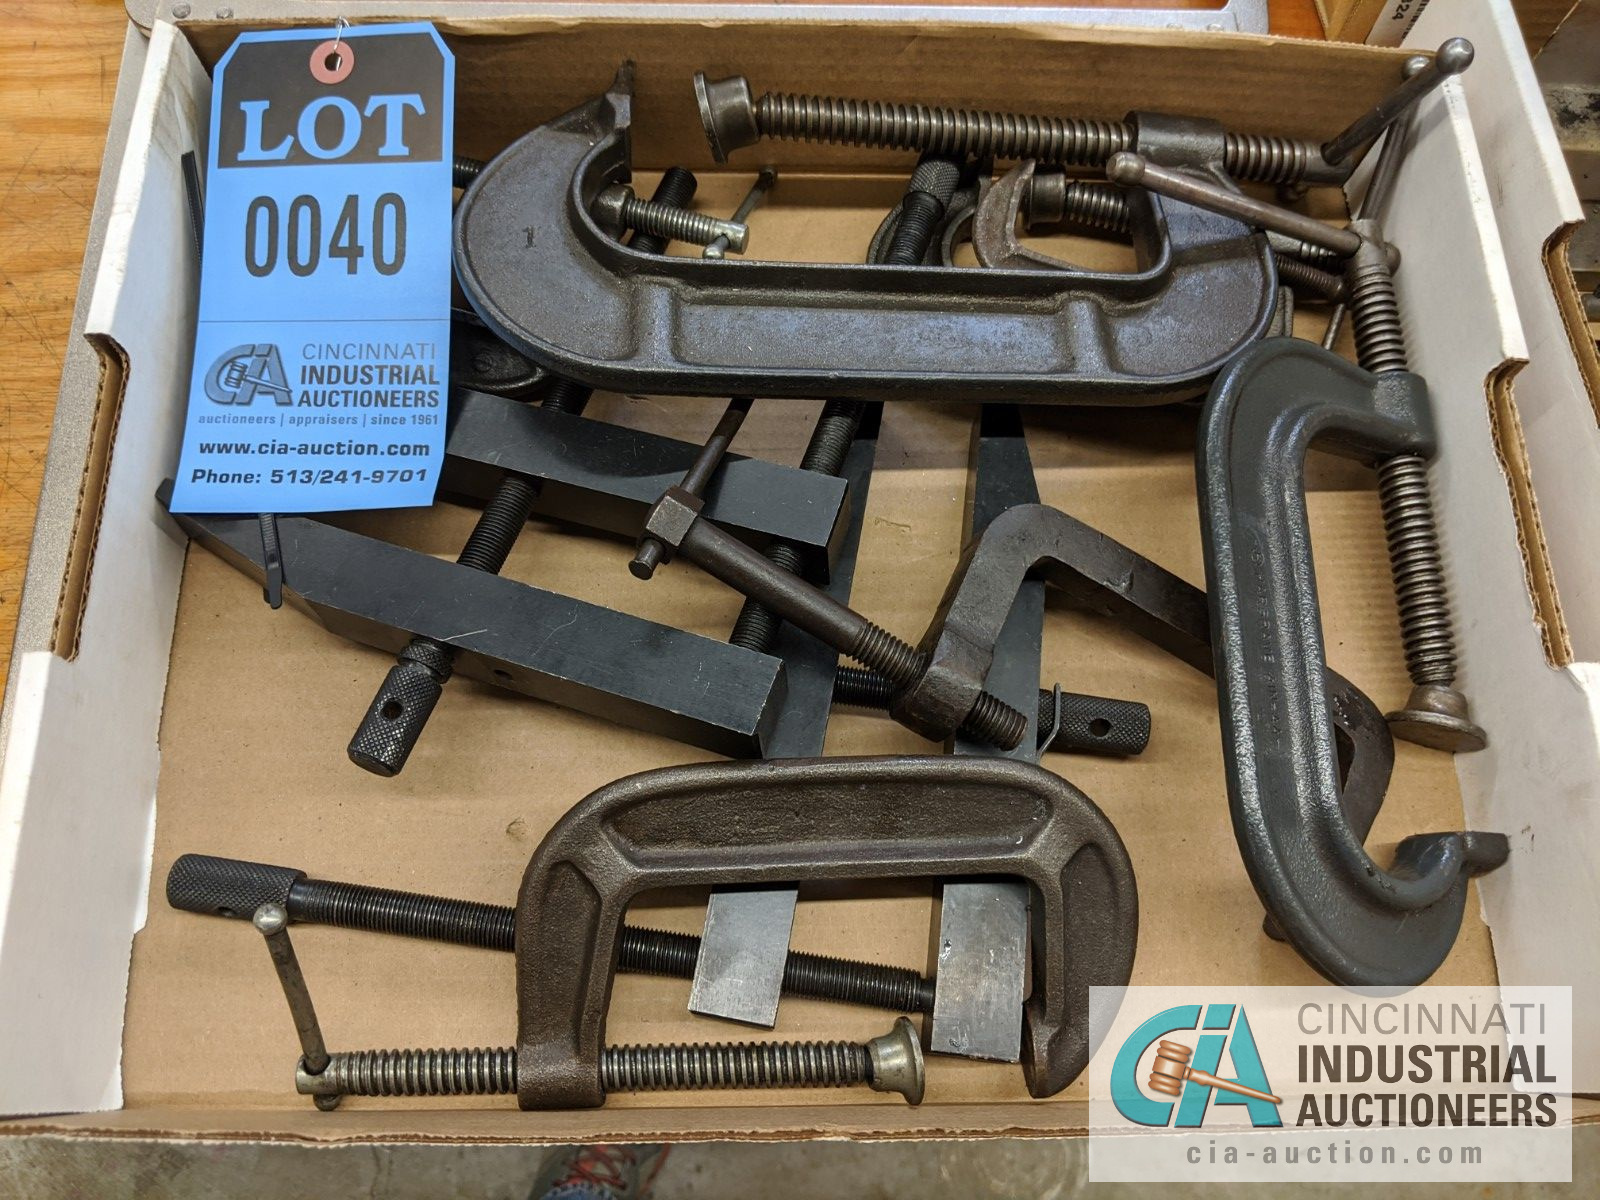 (LOT) ASSORTED C-CLAMPS AND DEEP THROAT VISE GRIP CLAMPS - Image 2 of 3